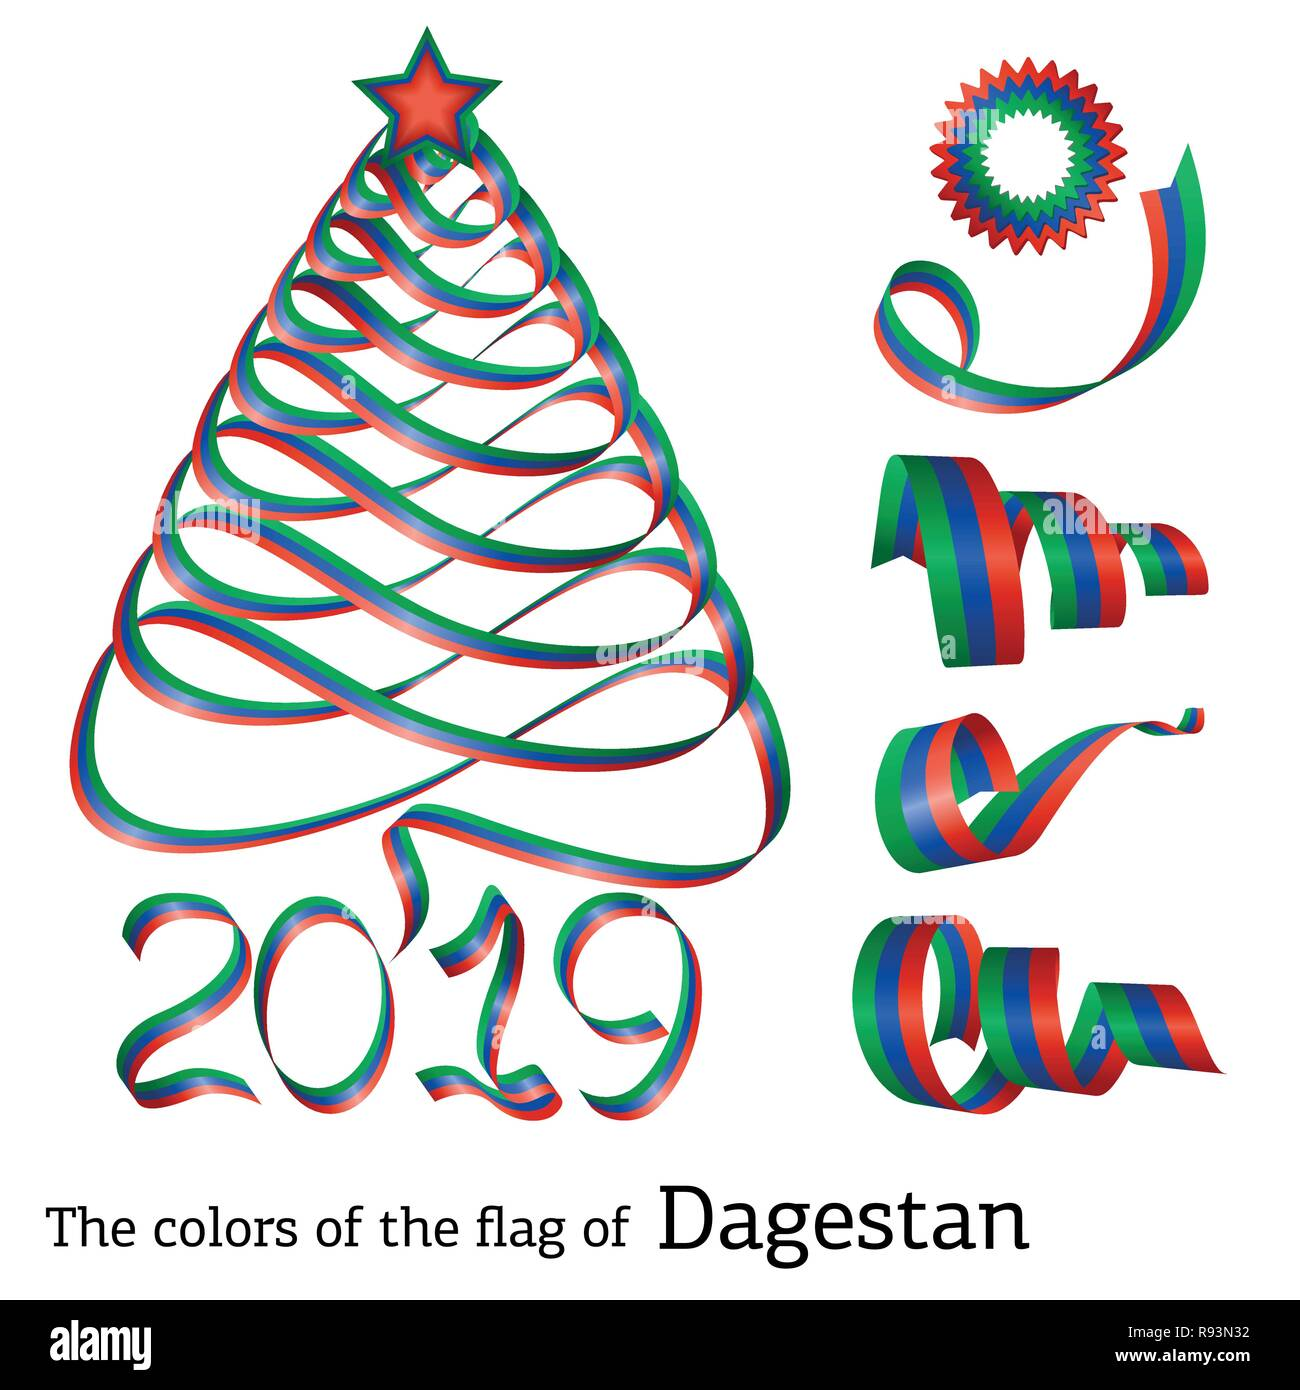 Ribbon In The Shape Of A Christmas Tree With The Colors Of The Flag Of Dagestan Stock Vector Image Art Alamy